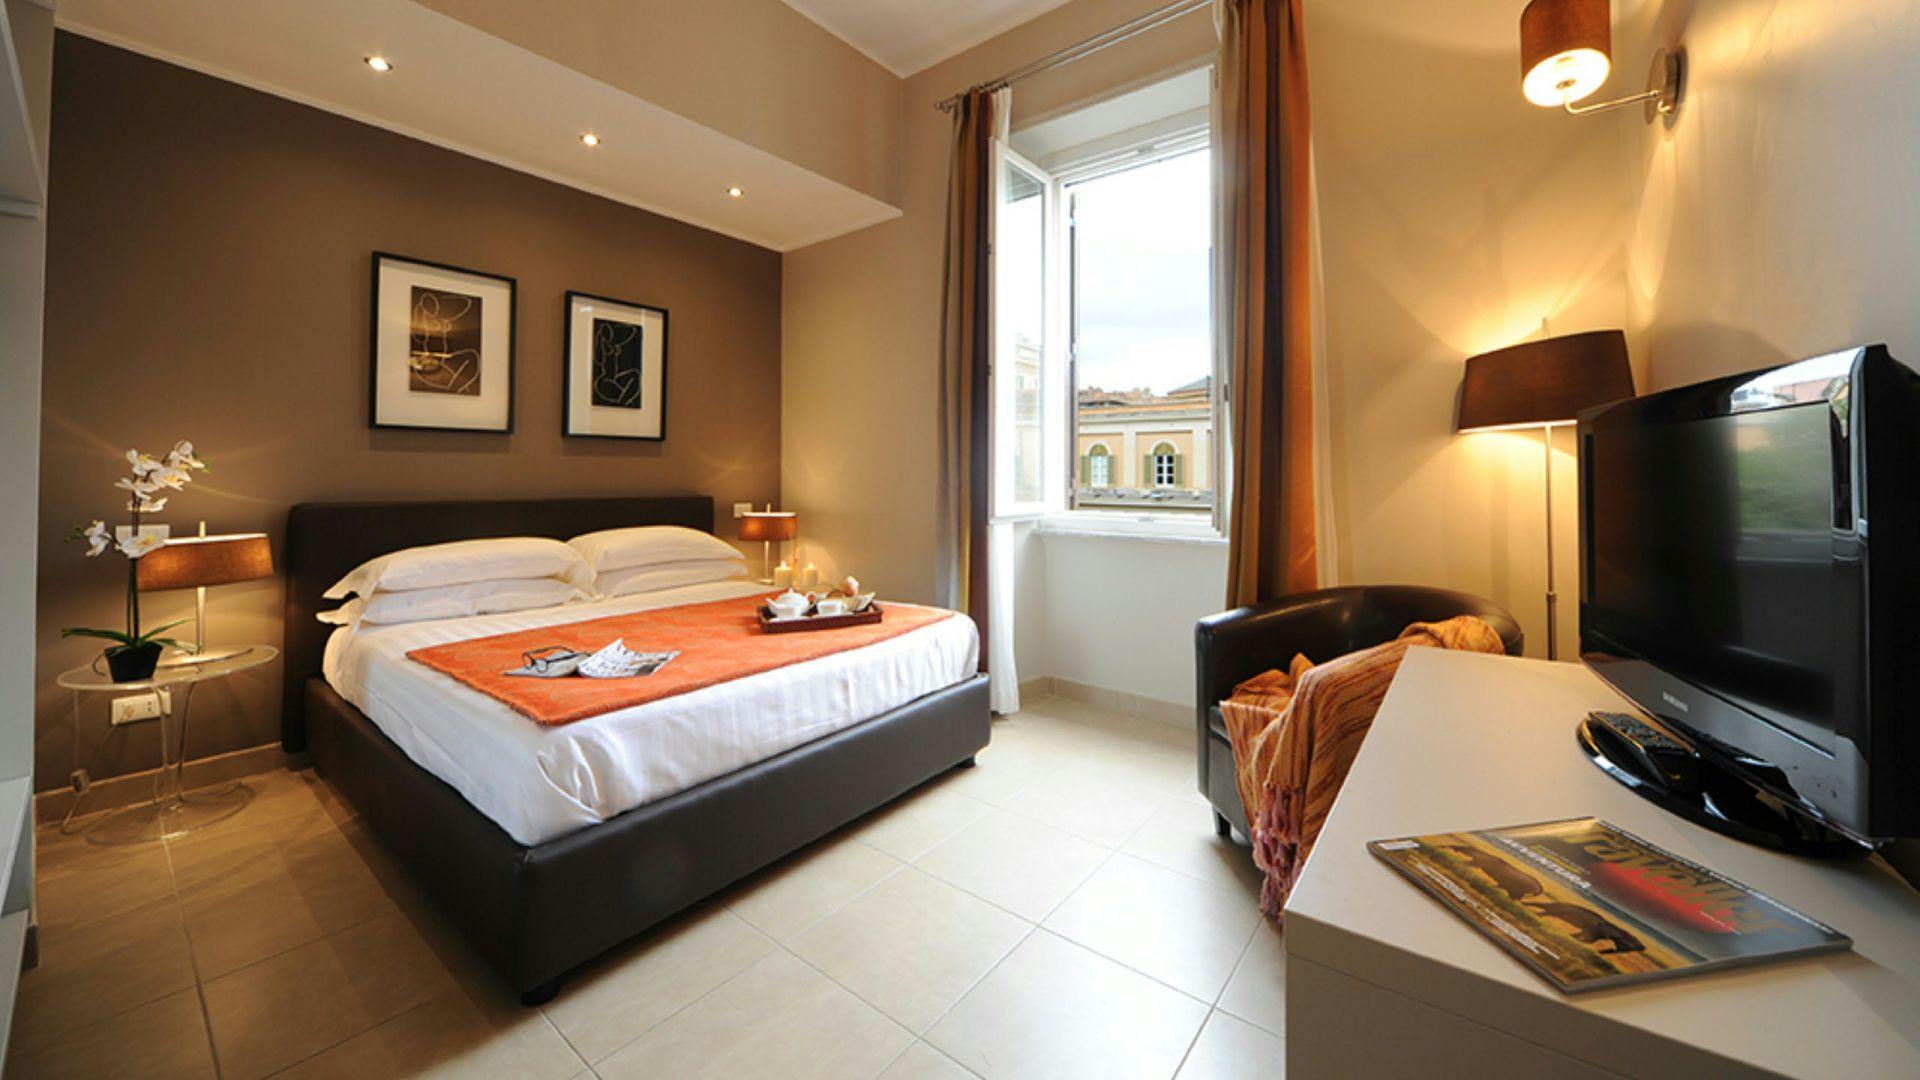 residence-trianon-rome-rooms-4058